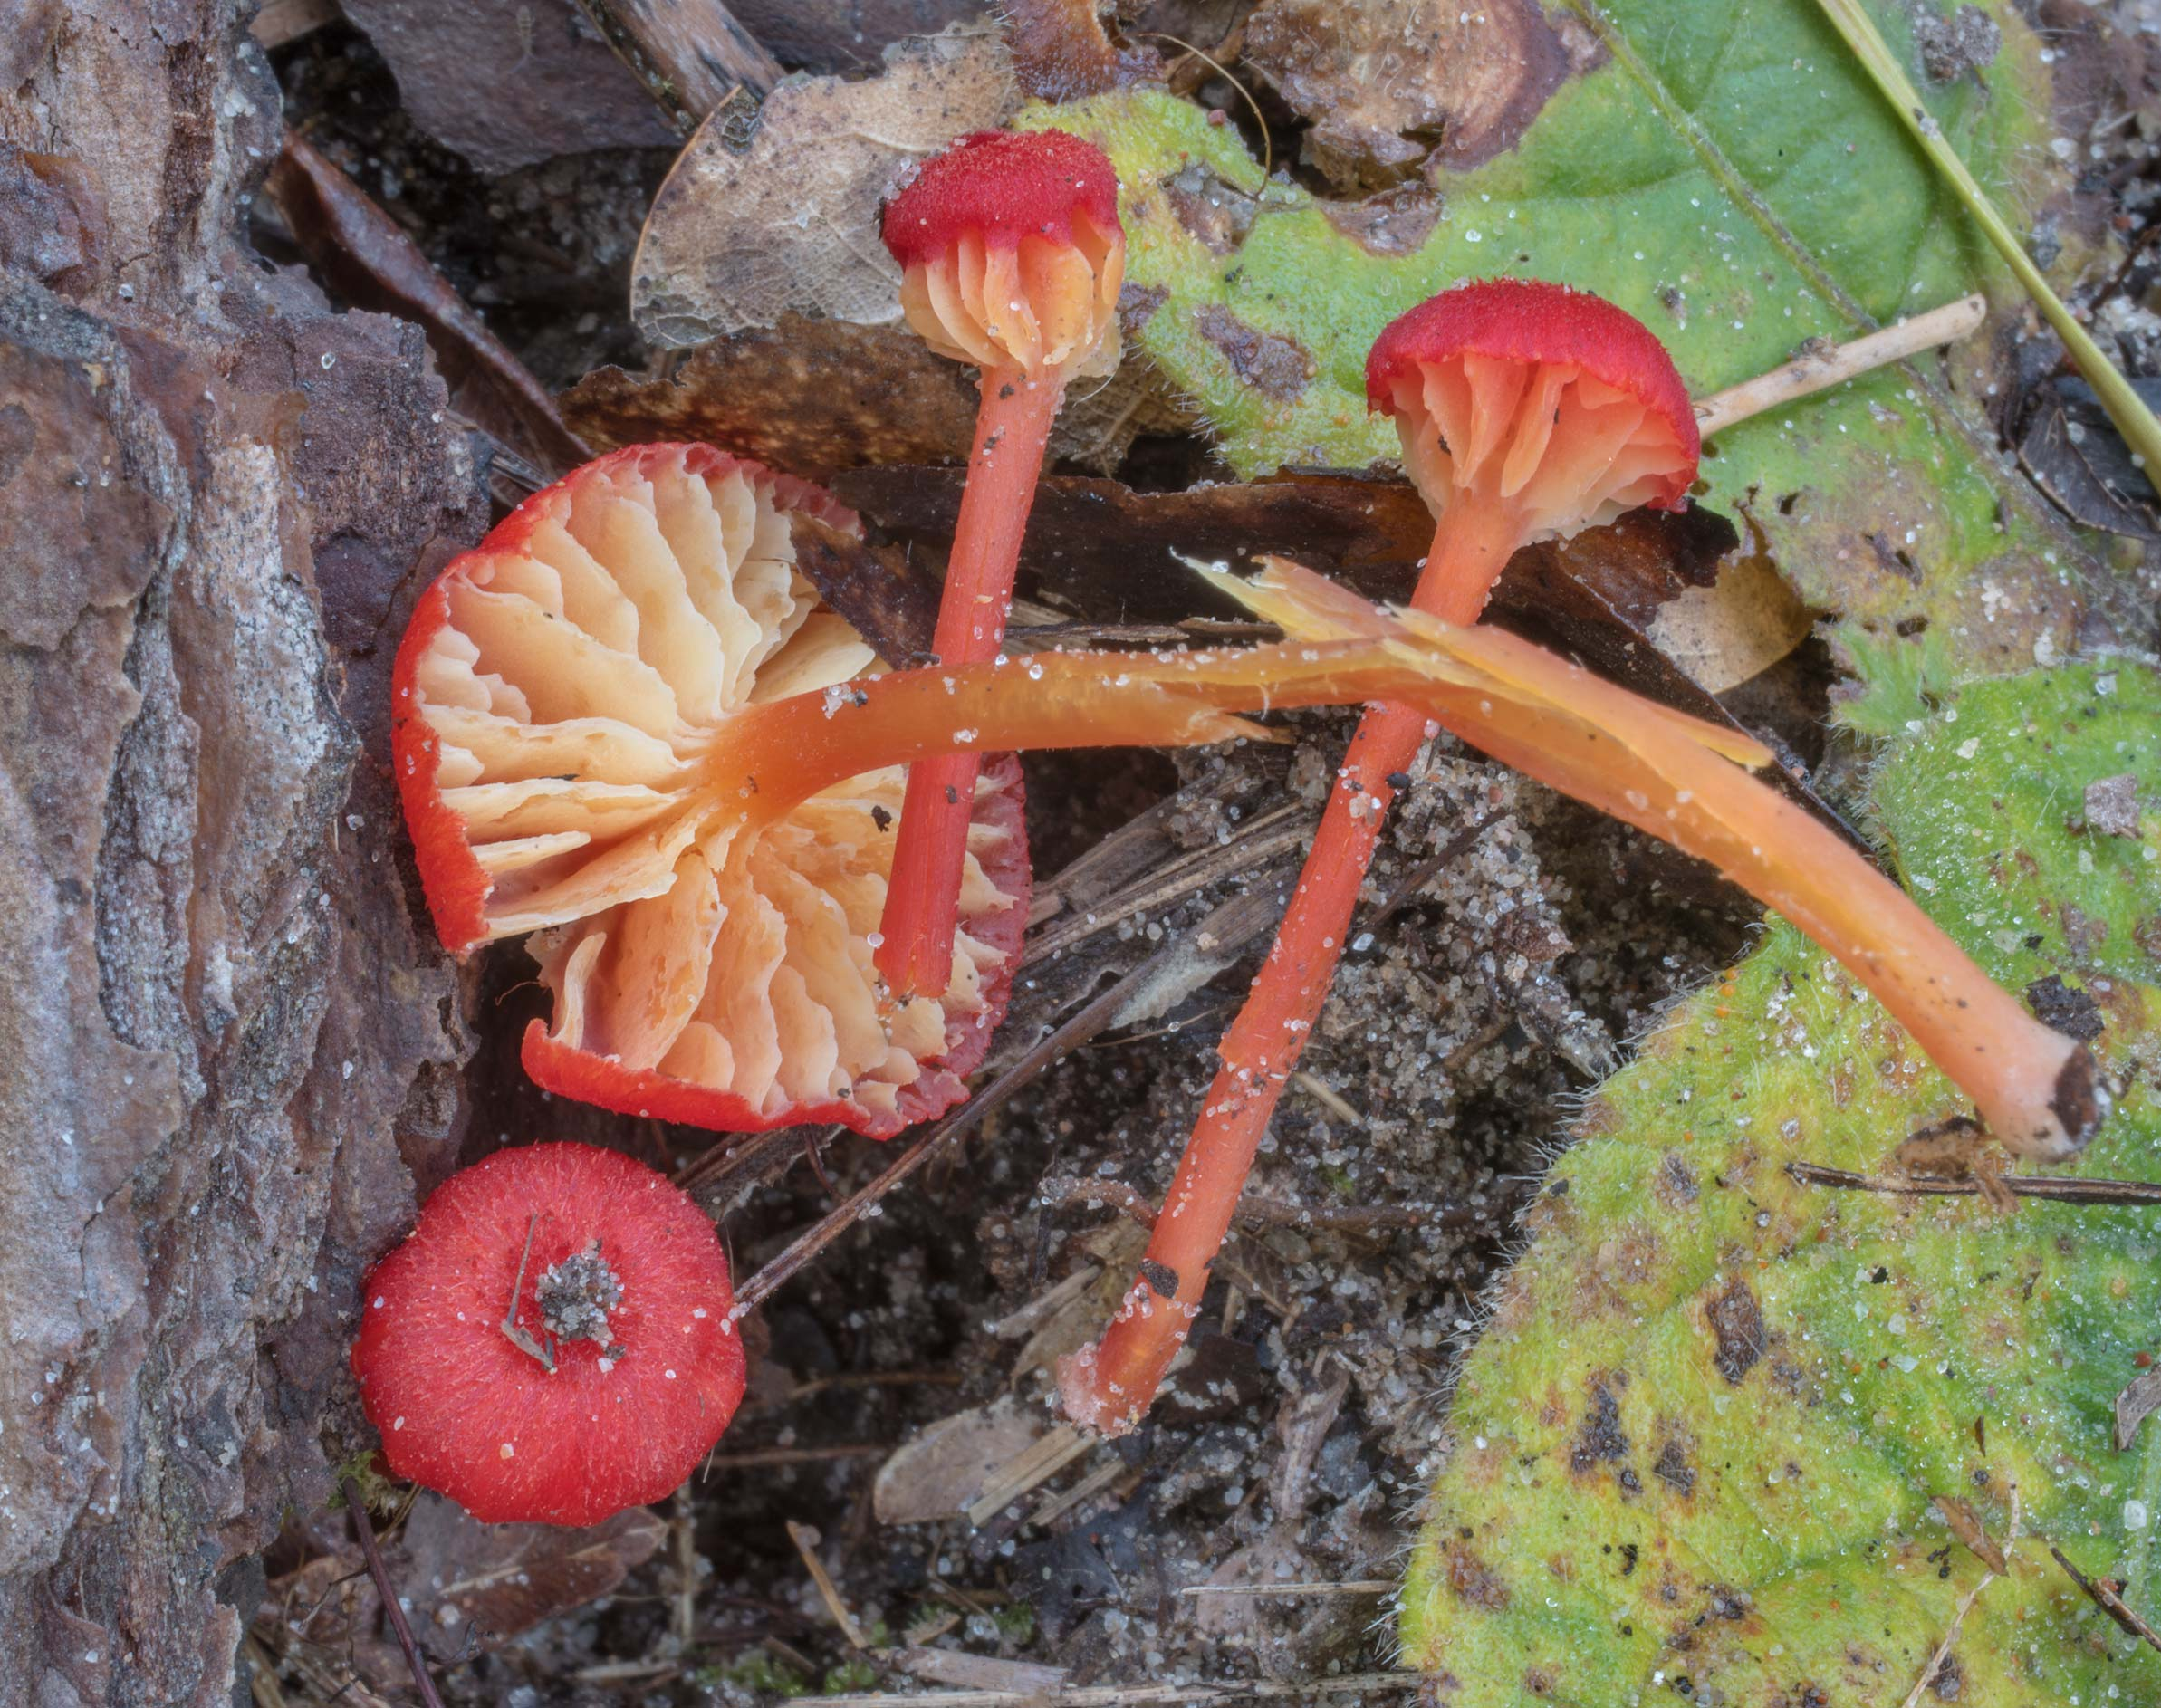 Vermilion waxcap mushrooms (Hygrocybe miniata) on...National Forest. Montgomery, Texas